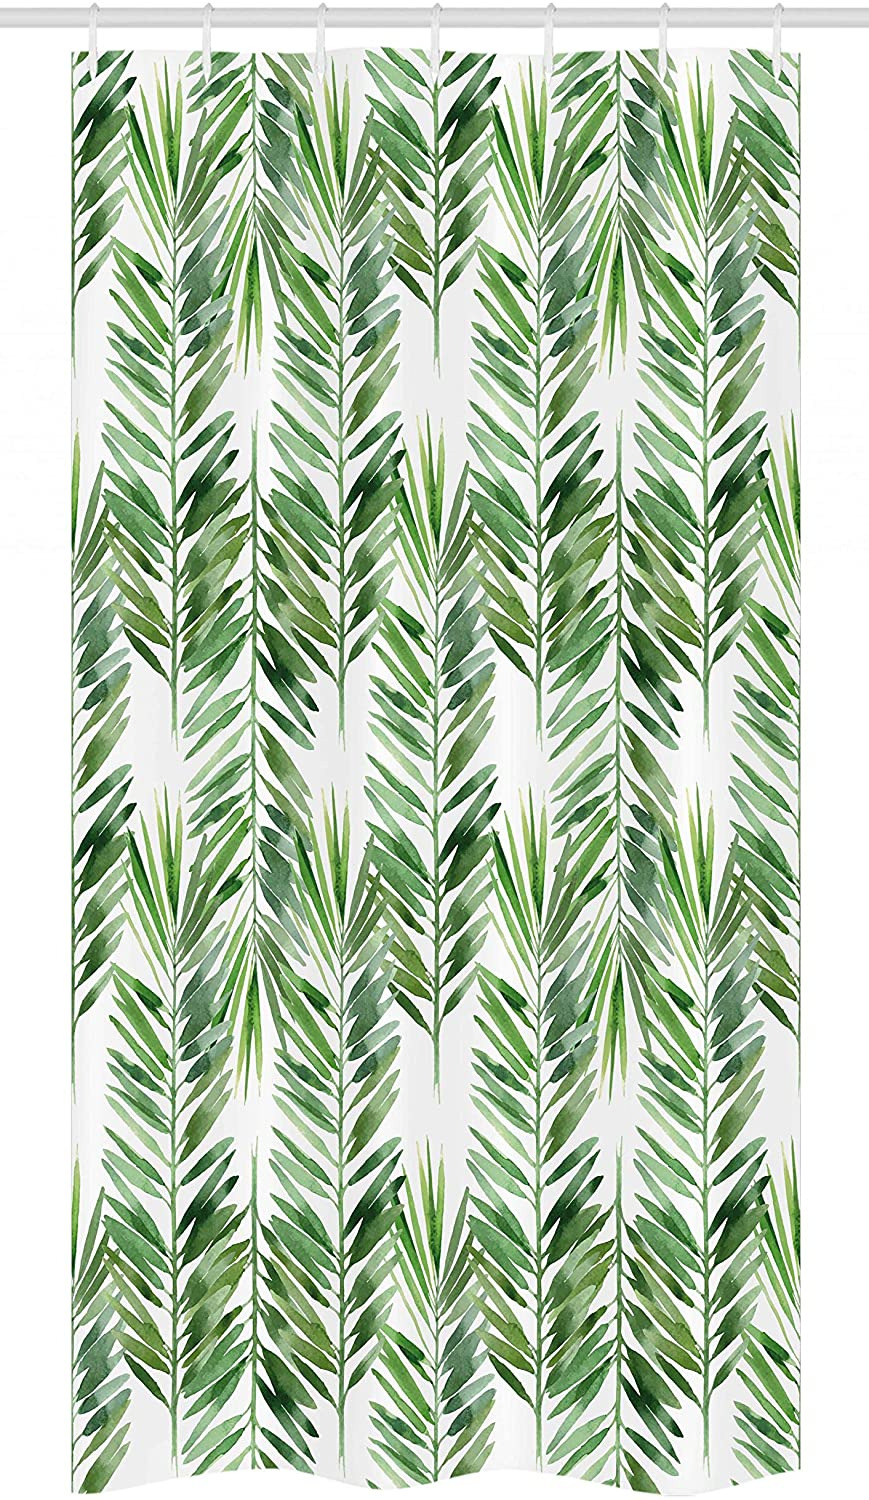 Palm Tree Bathroom Decor Unique Ambesonne Palm Tree Stall Shower Curtain Watercolor Tropical Tree Branches Evergreen Leaf Featured Plant Design Fabric Bathroom Decor Set with